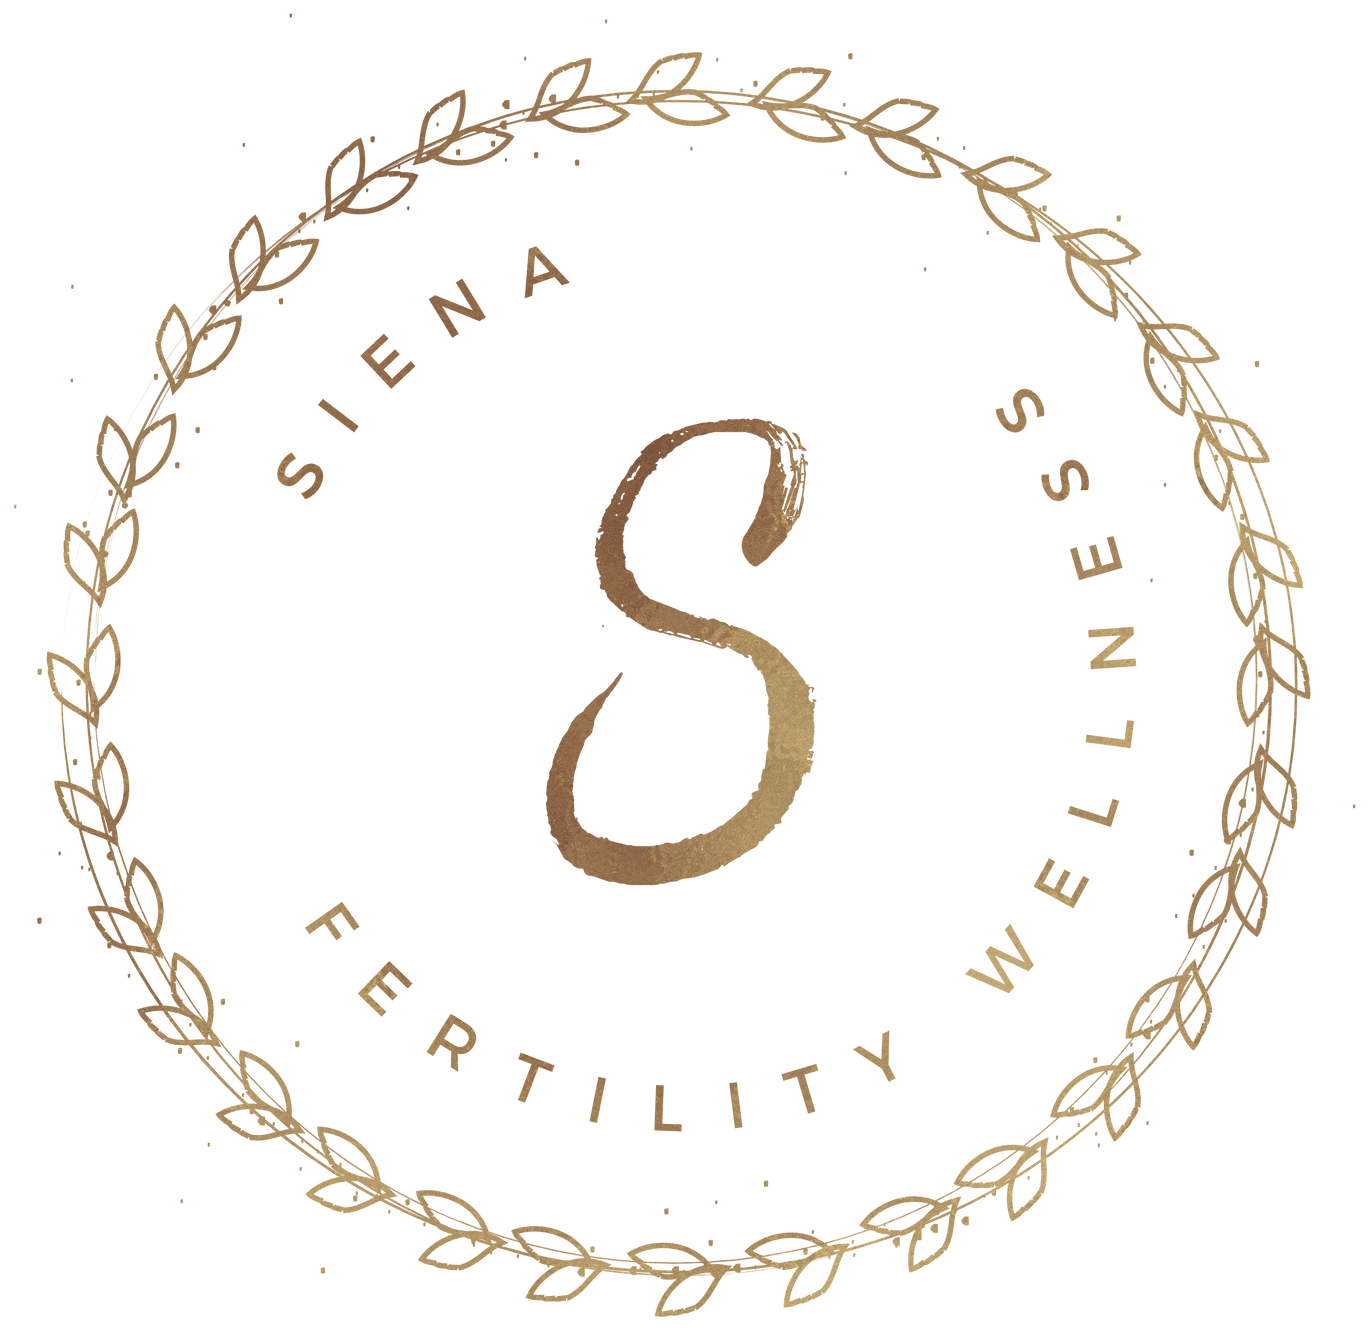 Siena Fertility + Wellness